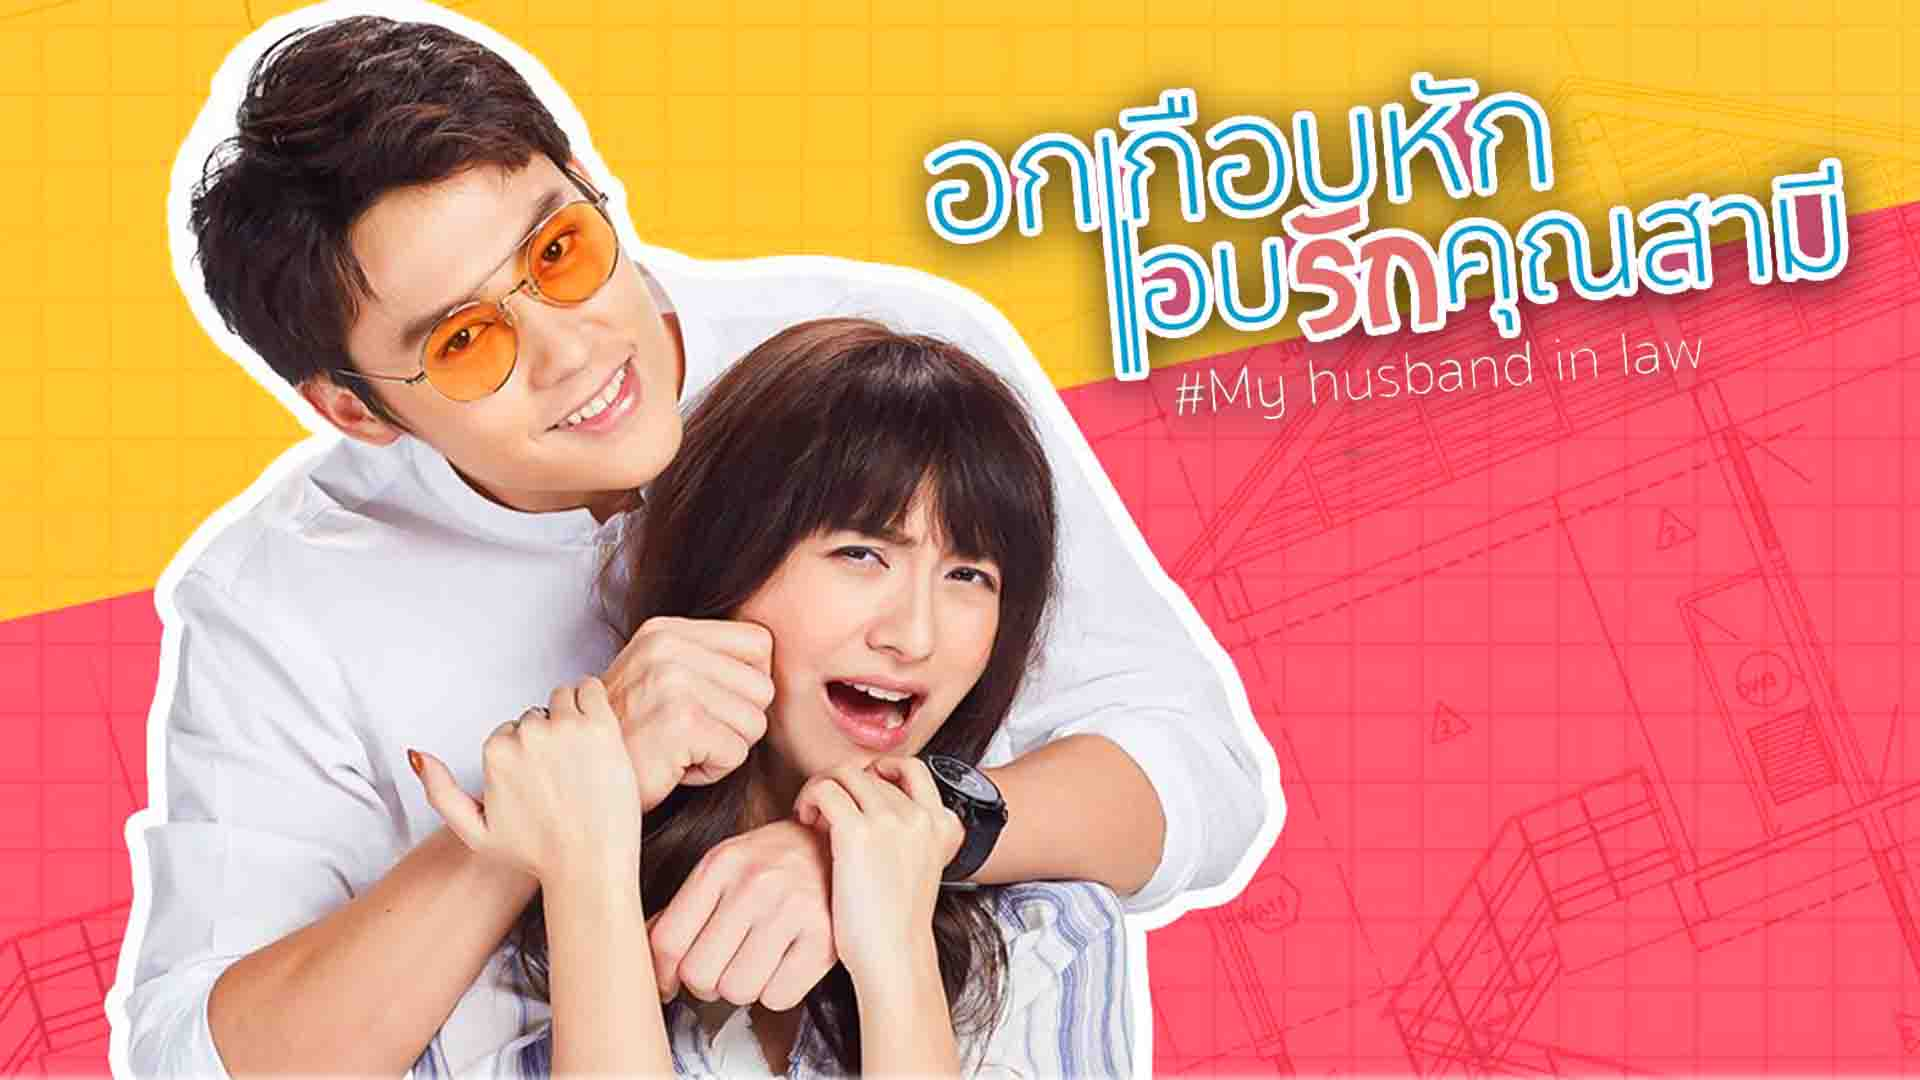 Ok Keub Hak Ab Ruk Khun Samee/My Husband in Law: 1×7